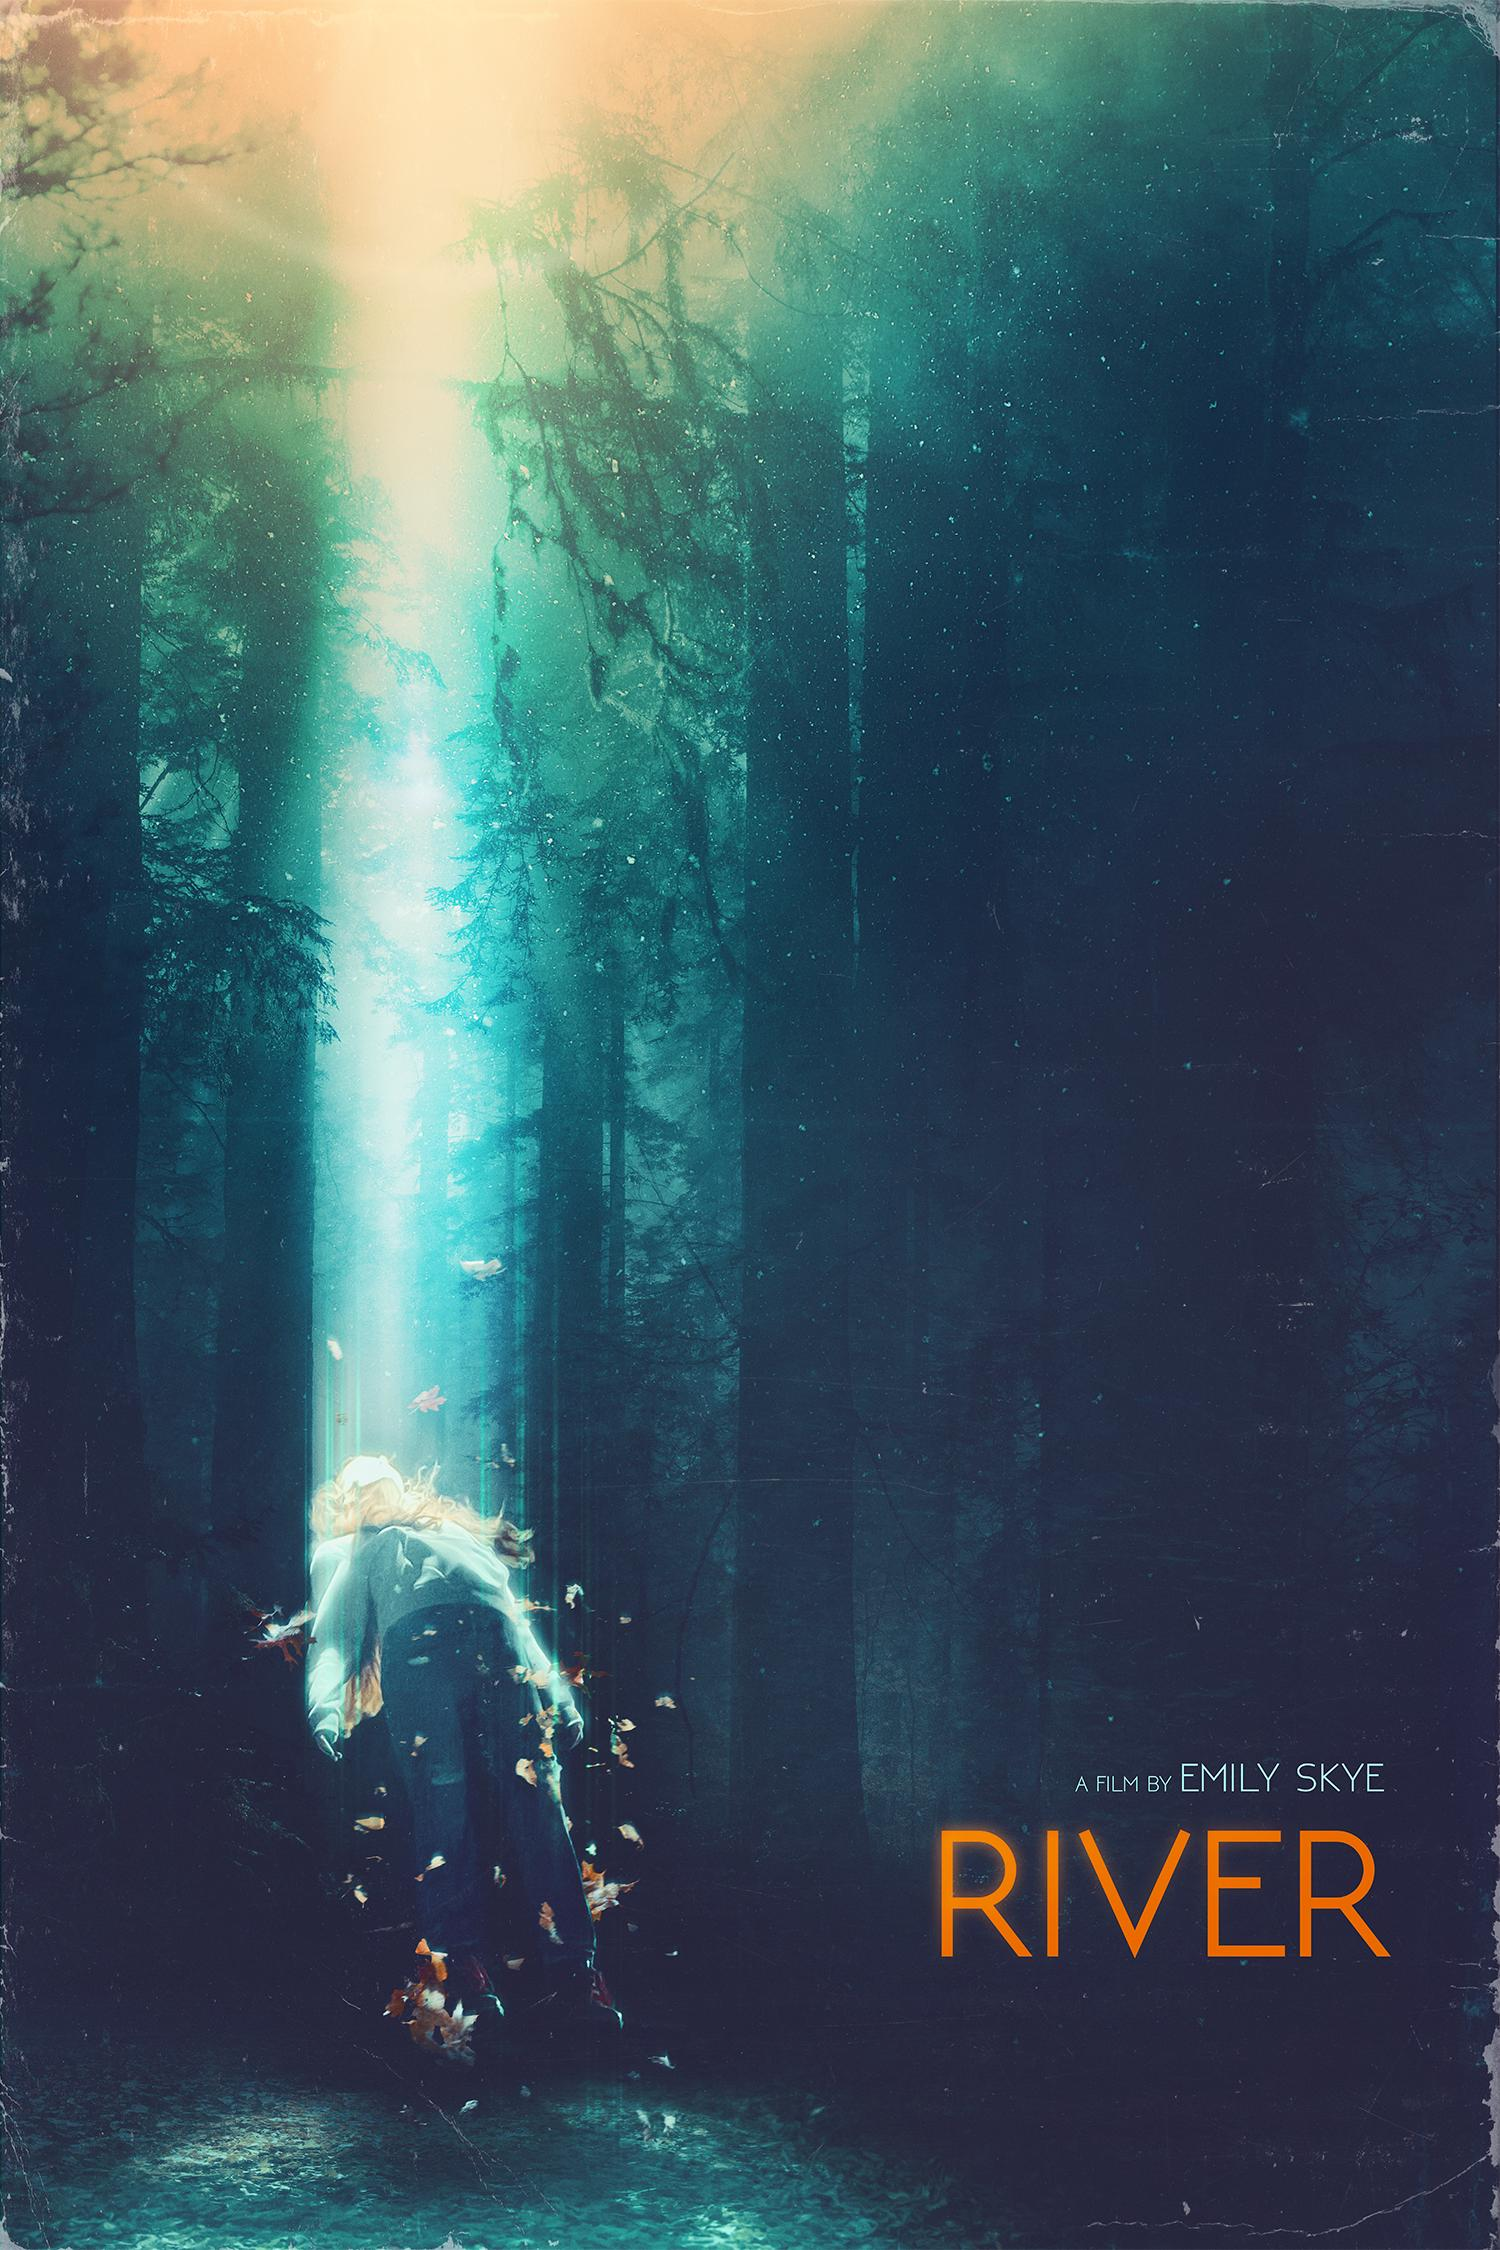 Download River (2021) Bengali Dubbed (Voice Over) WEBRip 720p [Full Movie] 1XBET Full Movie Online On 1xcinema.com